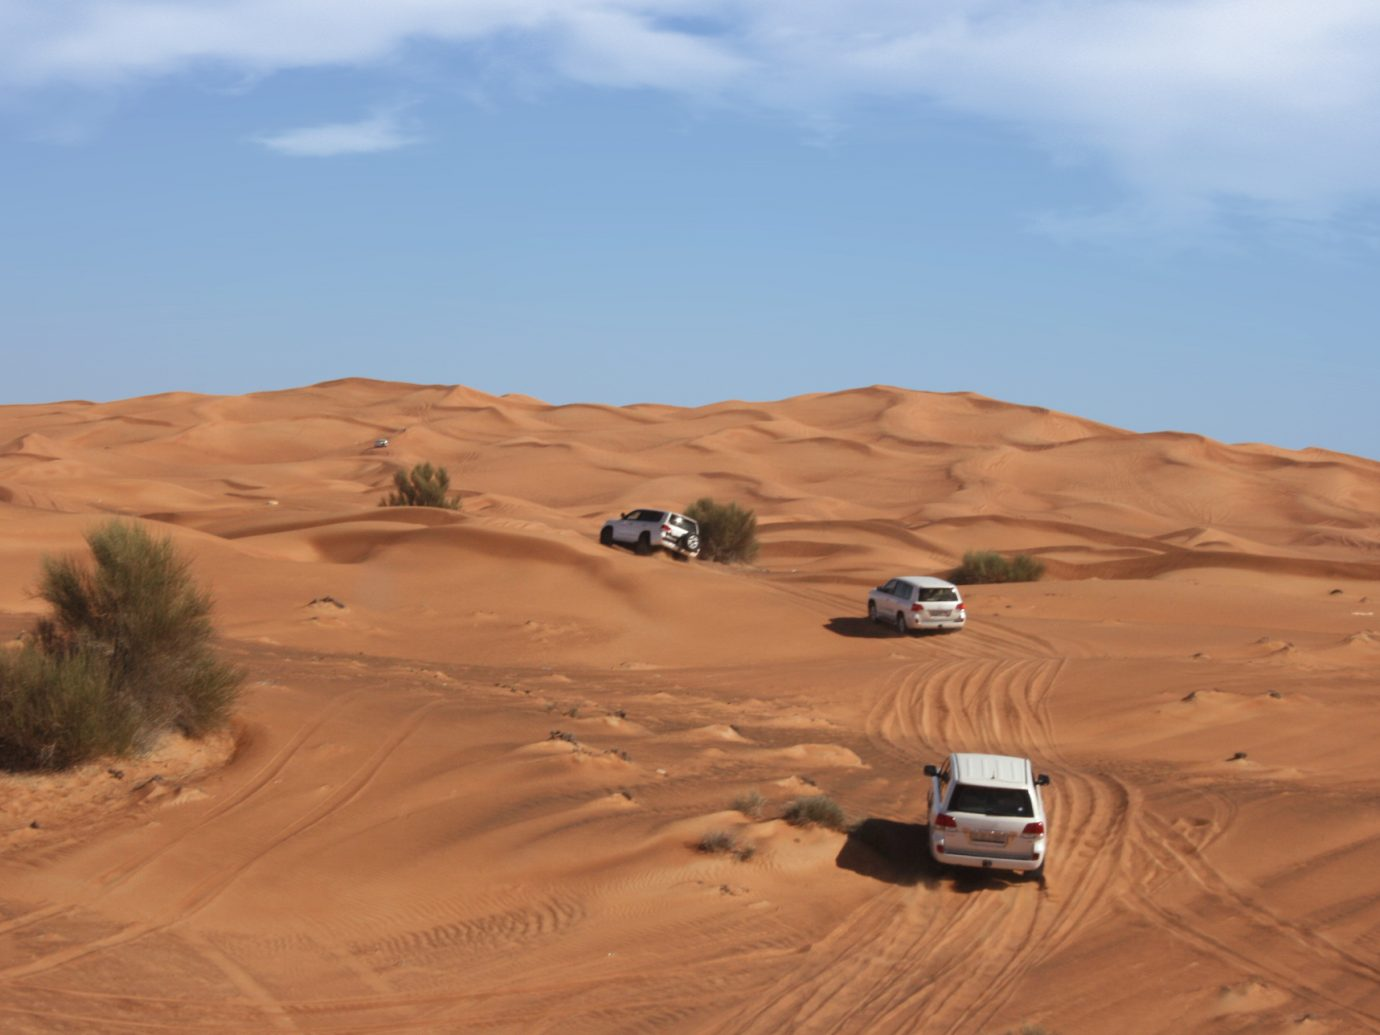 Desert safari at the sand dunes in Dubai, UAE.